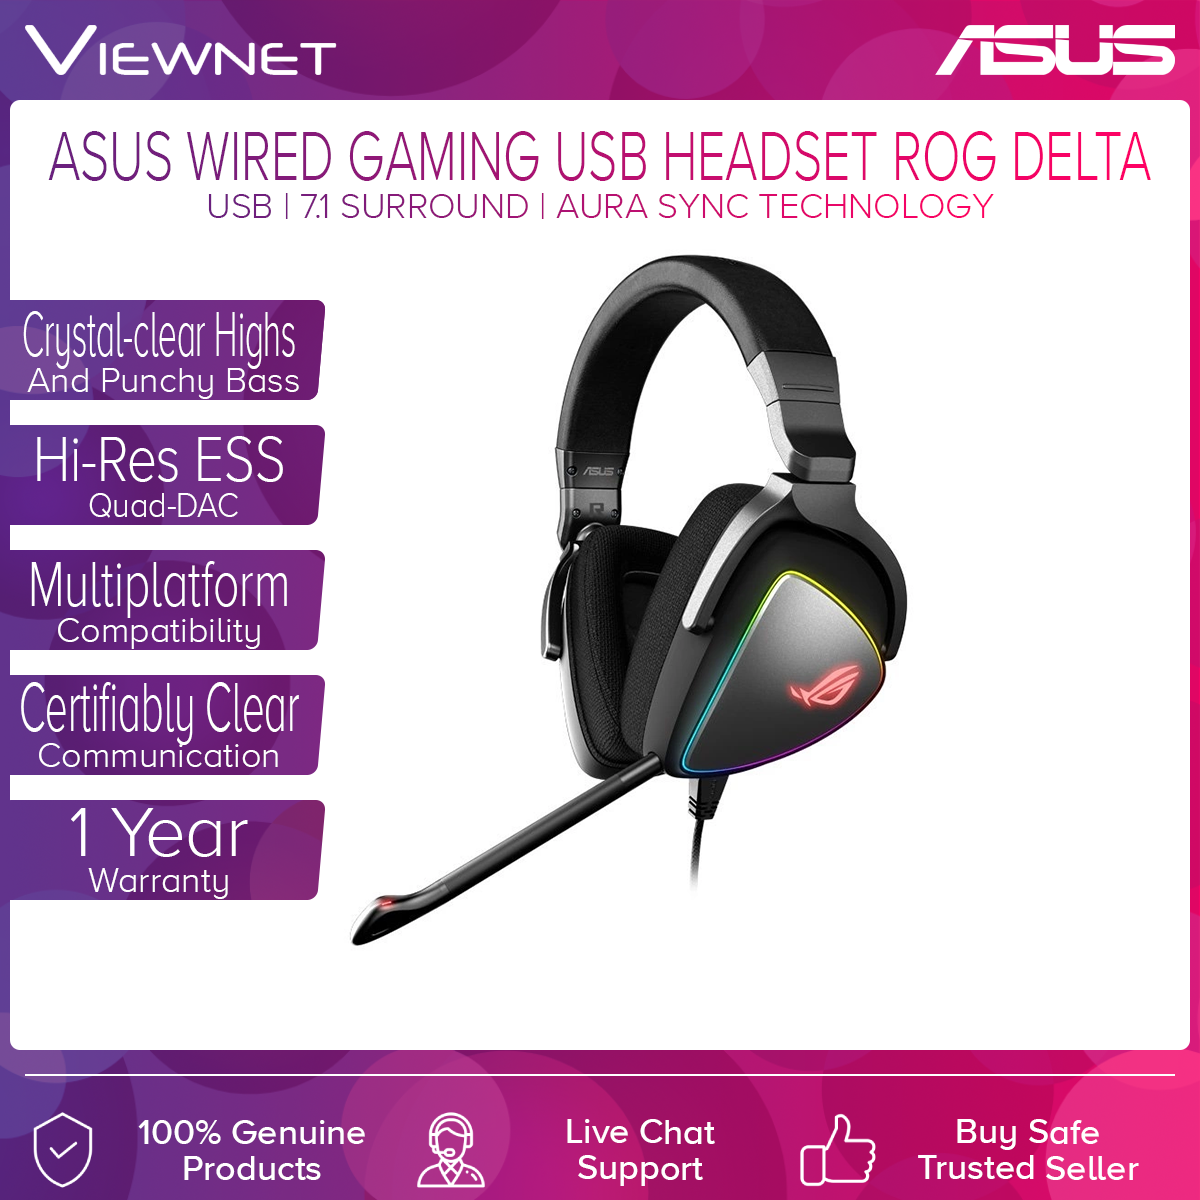 Asus ROG Wired Gaming Headset ROG Delta with USB, 7.1 Surround, Asus Aura Sync Technology, Crystal-clear Highs And Punchy Bass, Hi-Res ESS Quad-DAC, Multiplatform Compatibility, Certifiably Clear Communication